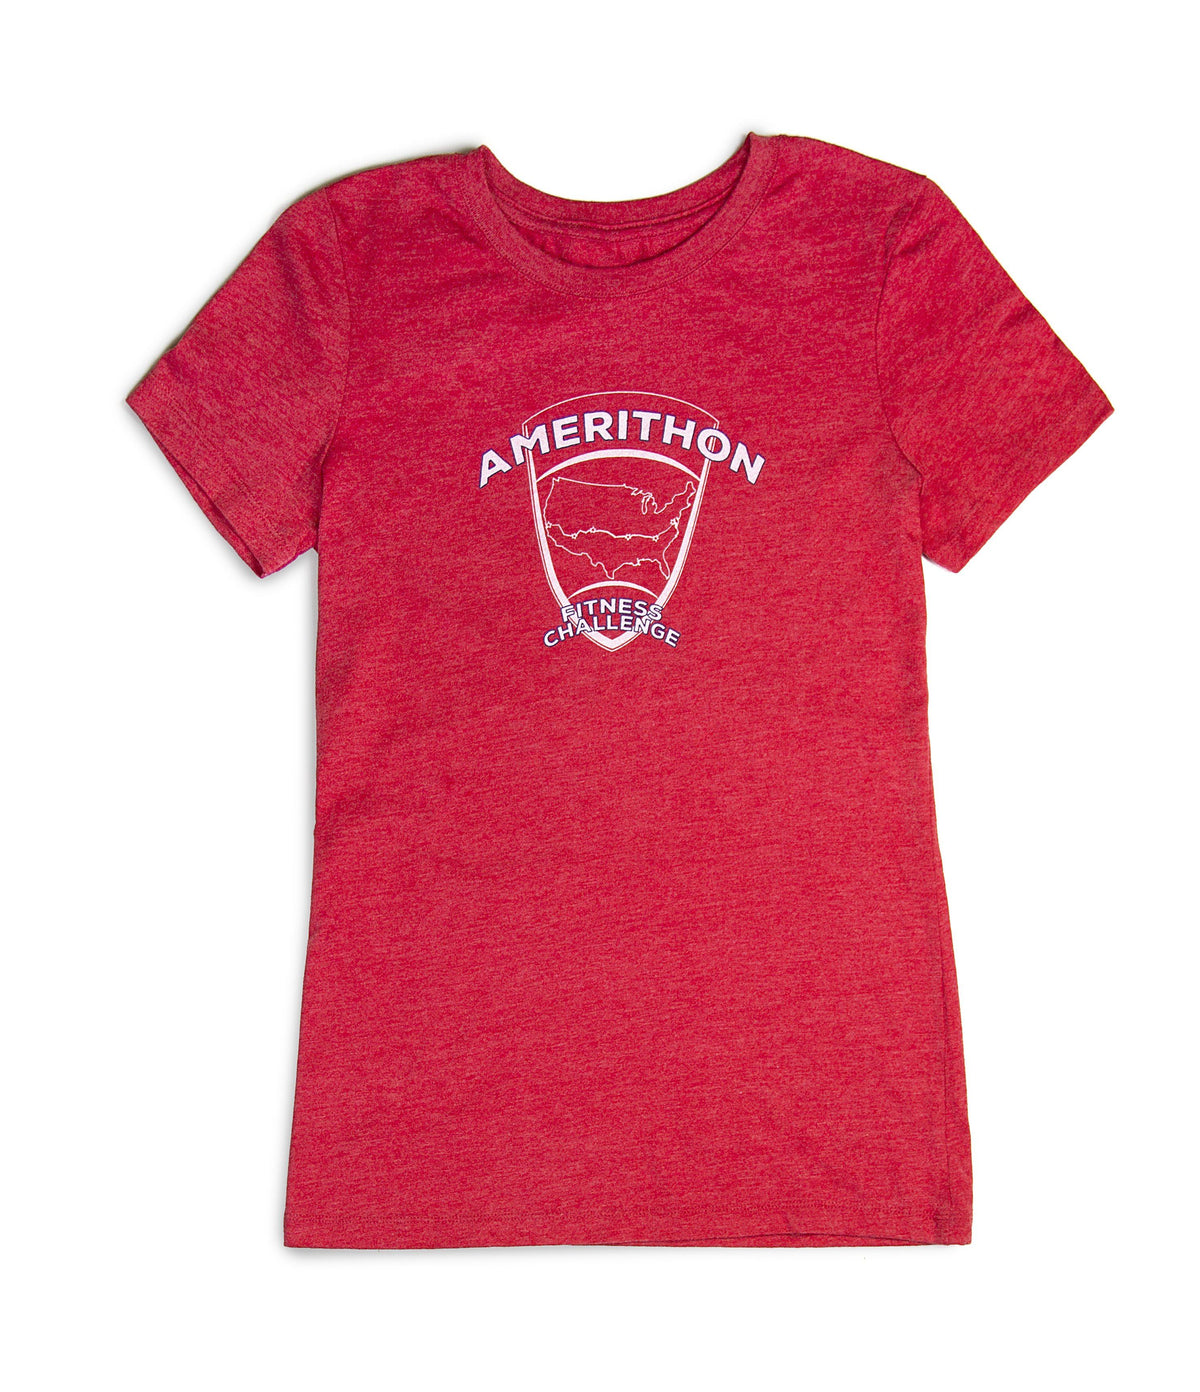 Amerithon Challenge Tri-Blend Shirt Shirts Run The Edge